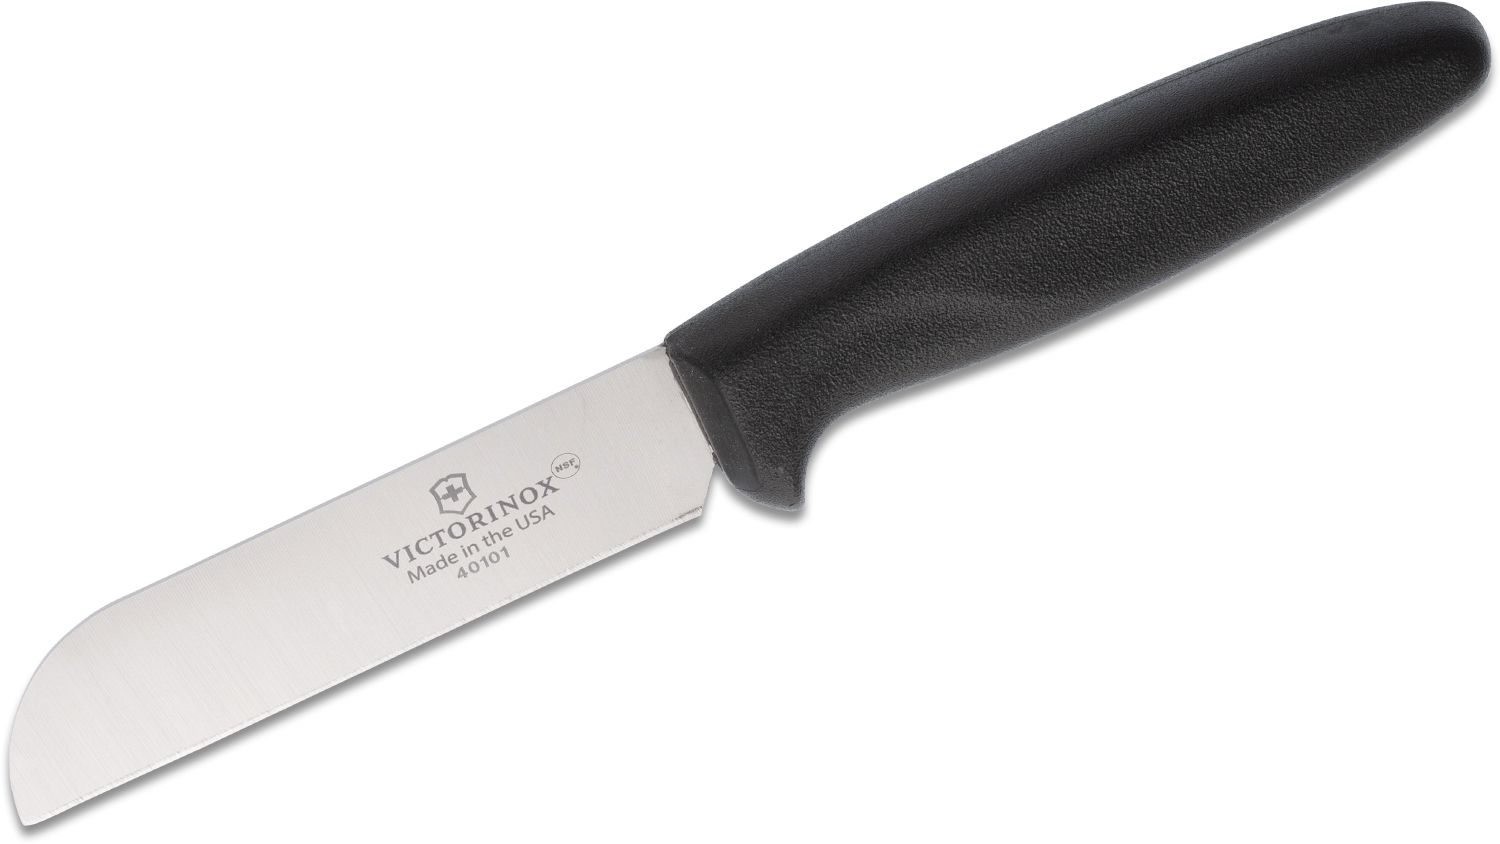 Victorinox Forschner 4.13 inch Produce Knife, Black Polypropylene Handle